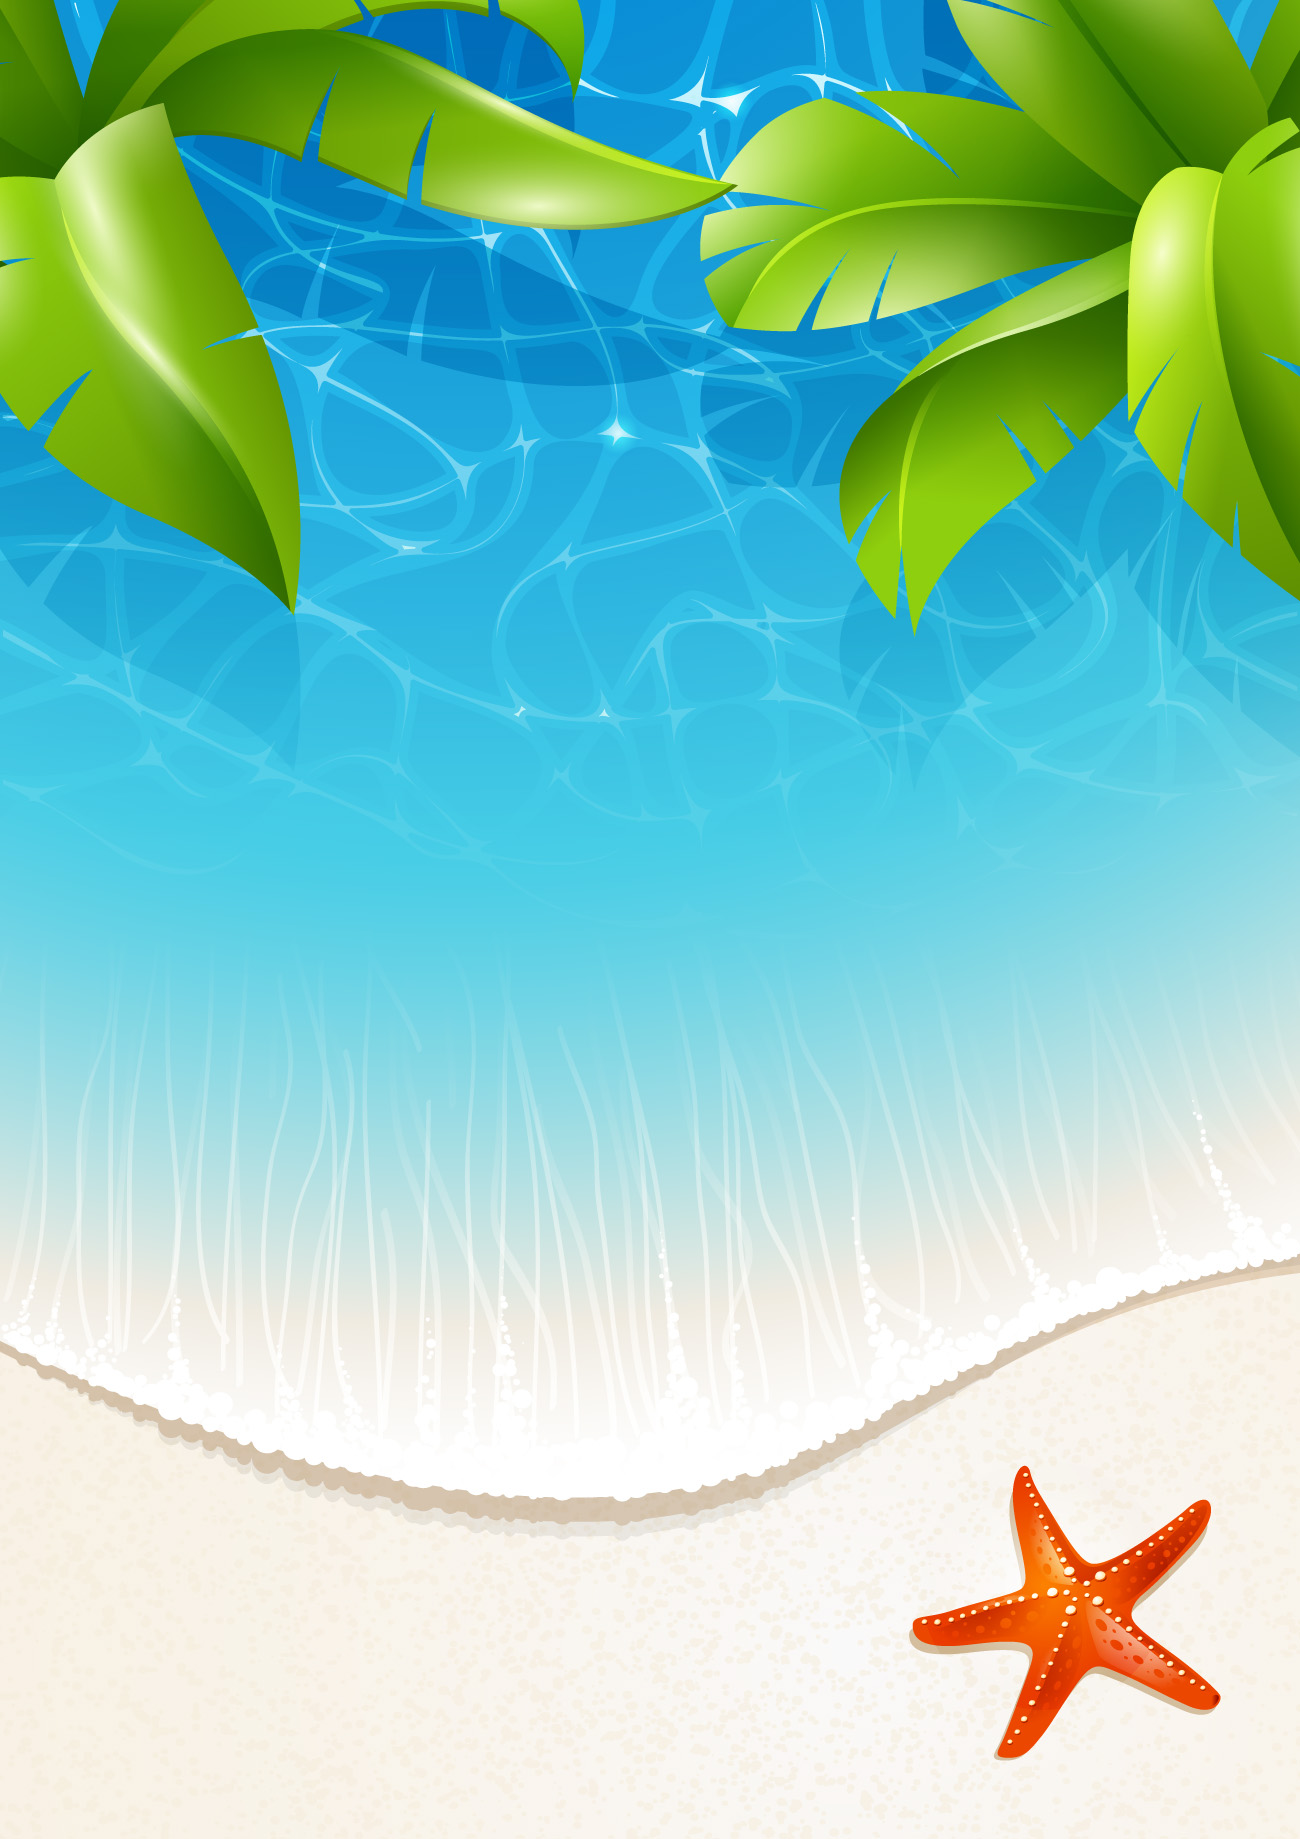 Beautiful Tropical Backgrounds vector 03  Free download